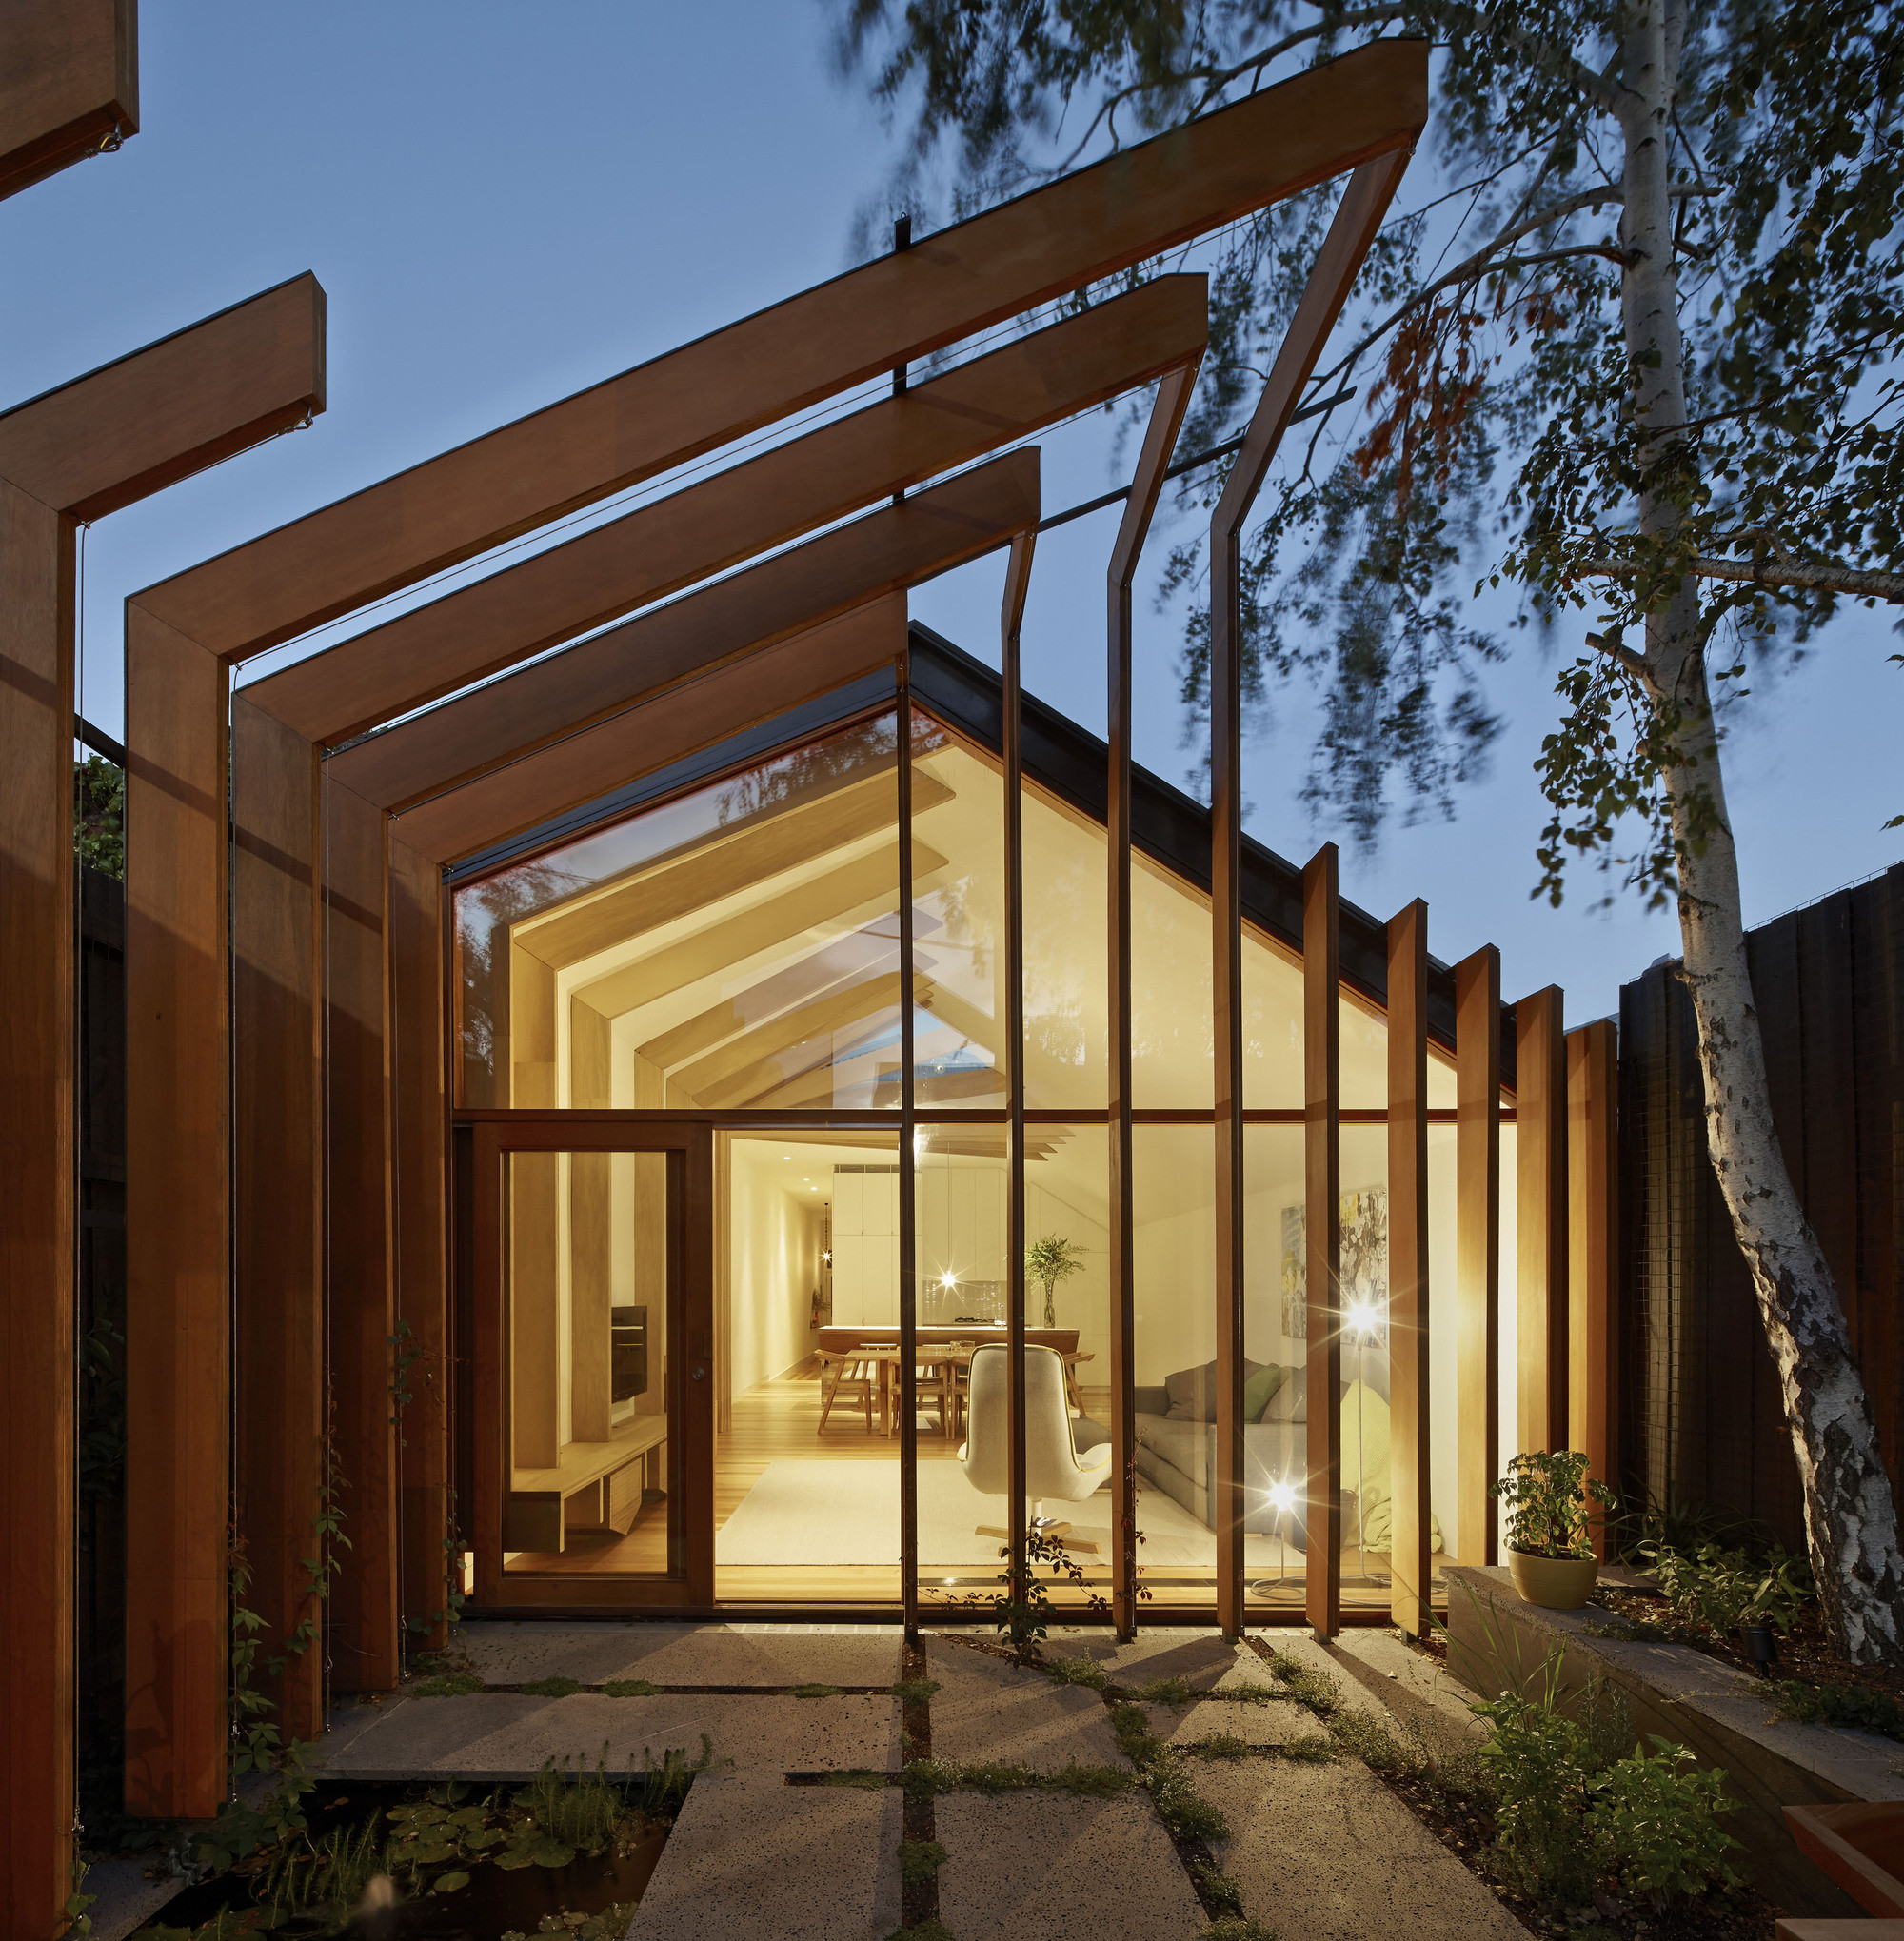 Wood Encouragement Policy Coming To Australia, Cross Stitch House; Melbourne / FMD Architects. Image © Peter Bennetts